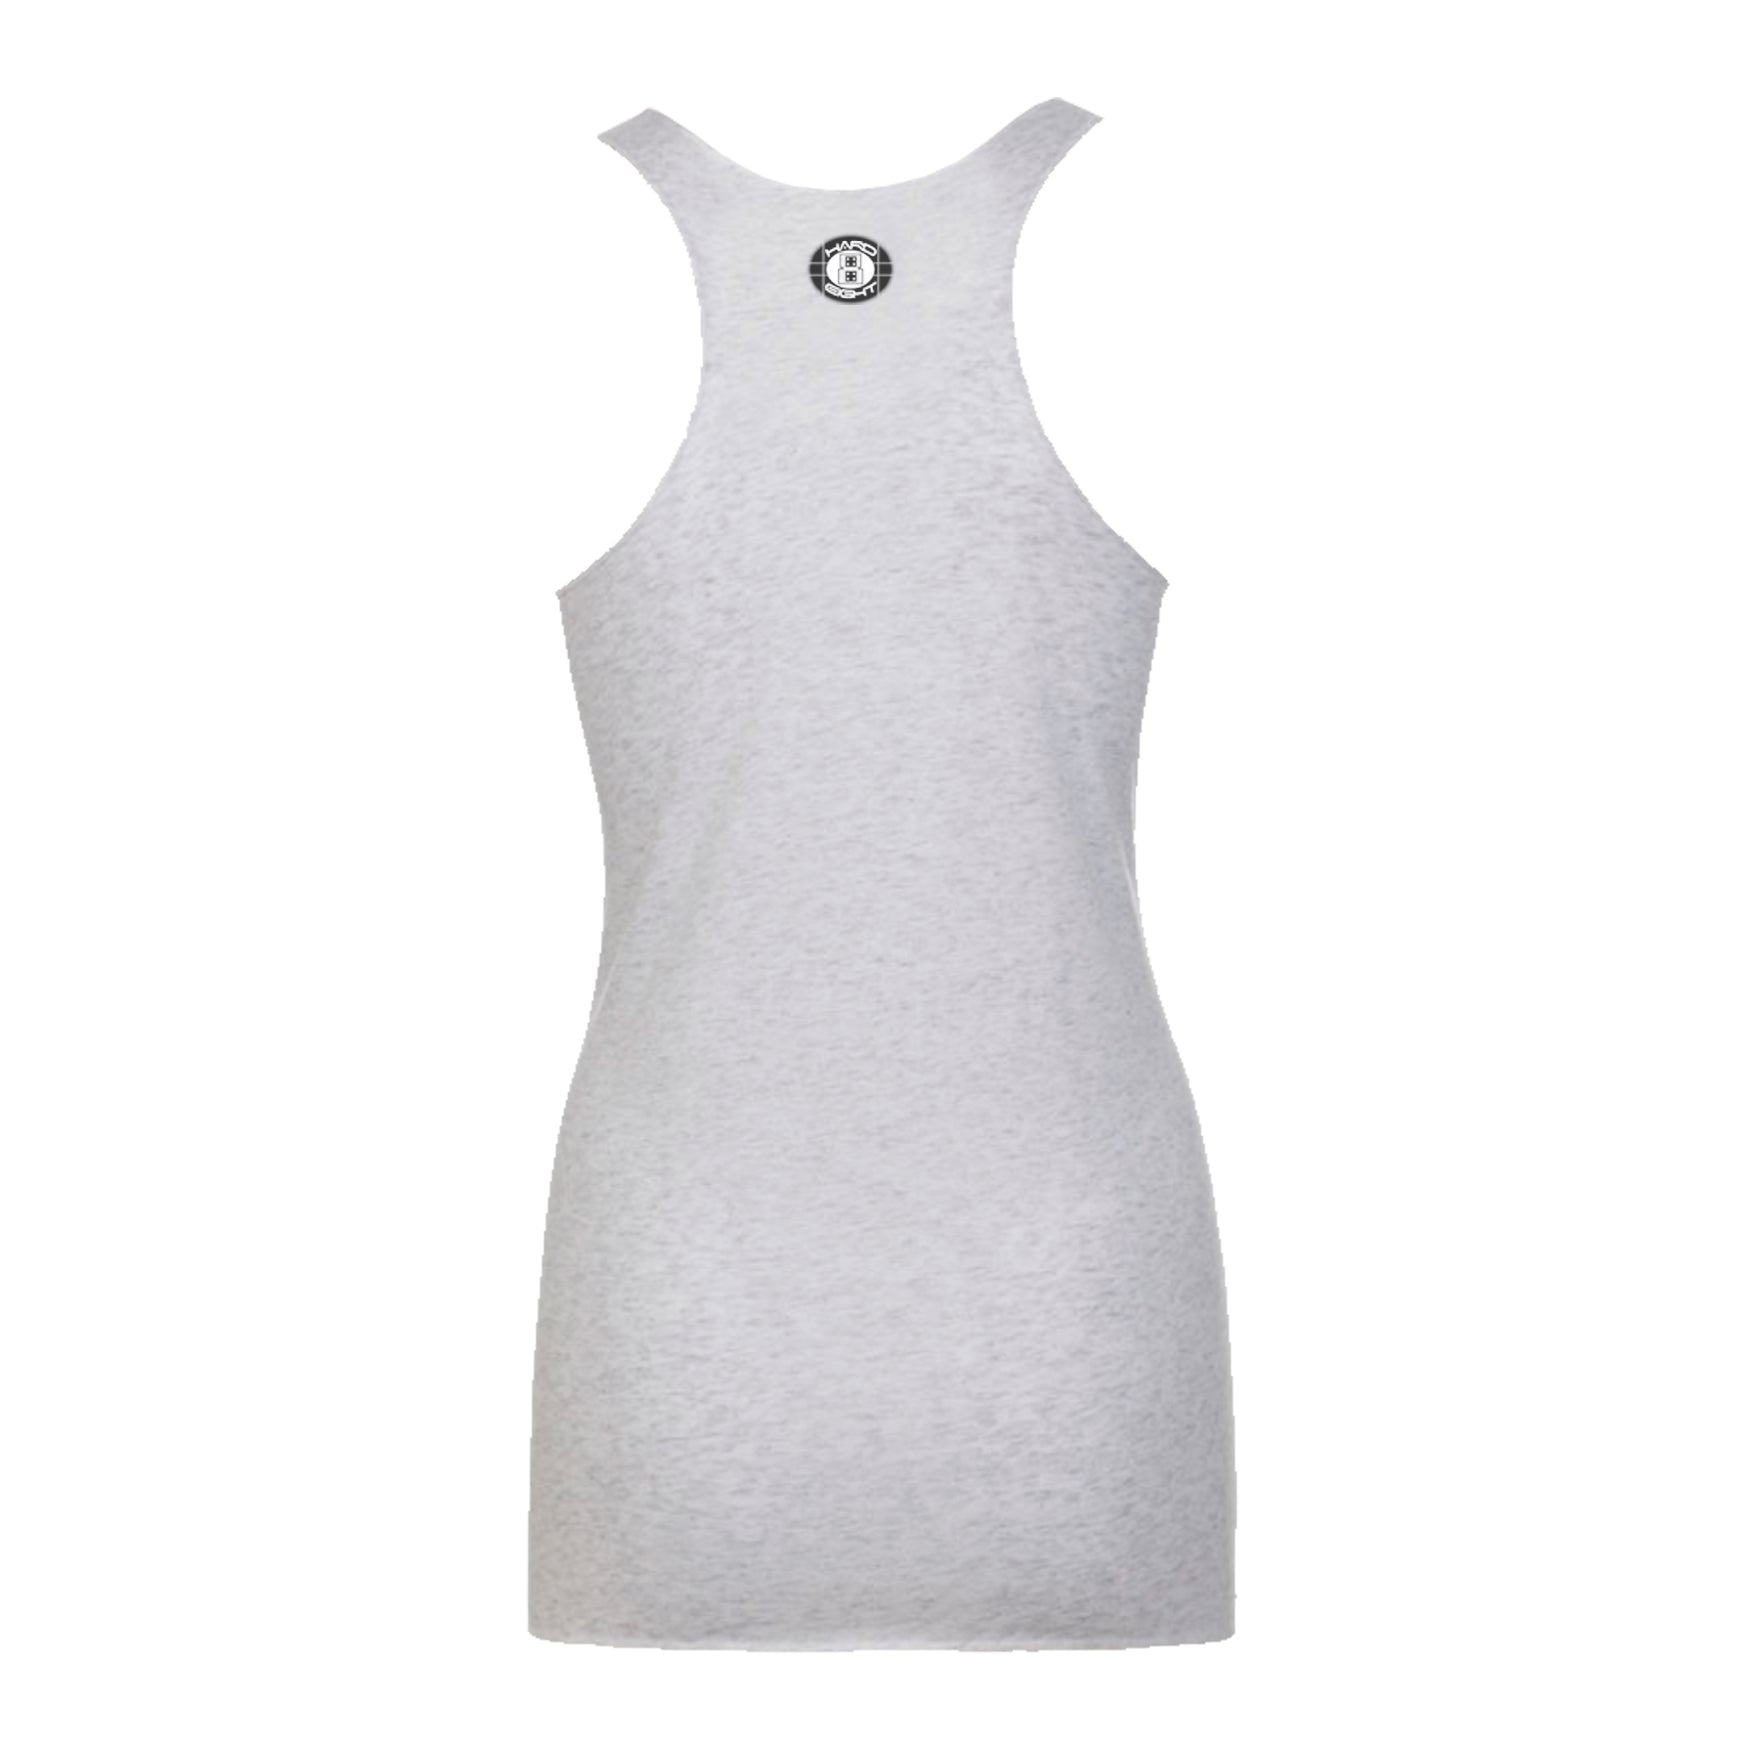 "WOMEN'S ""VINTAGE ANCHOR""  RAW EDGE RACER BACK TANK Oatmeal Heather"